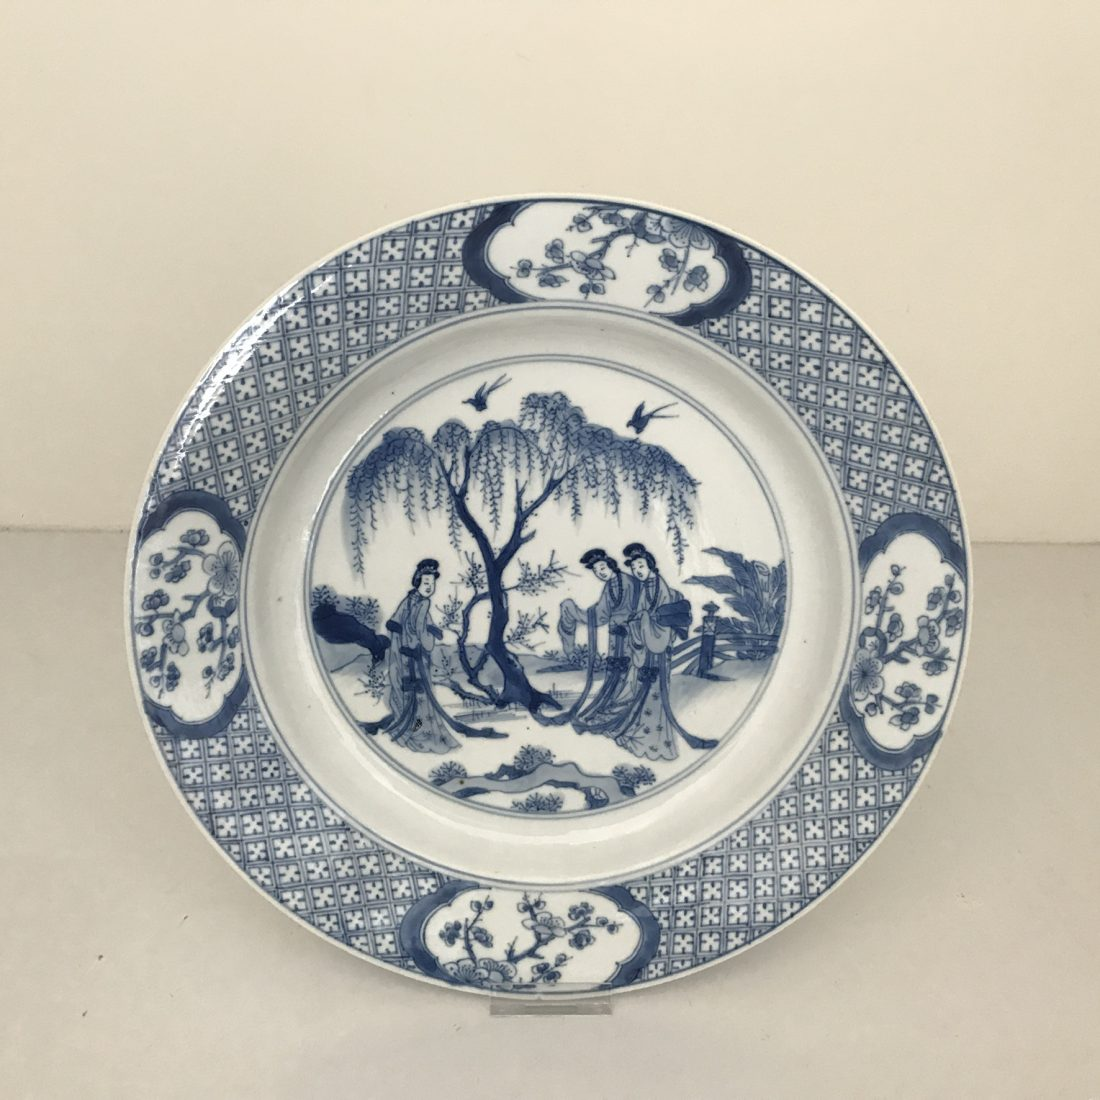 Blauw/wit porselein bord, China, Kangxi (1662-1722)